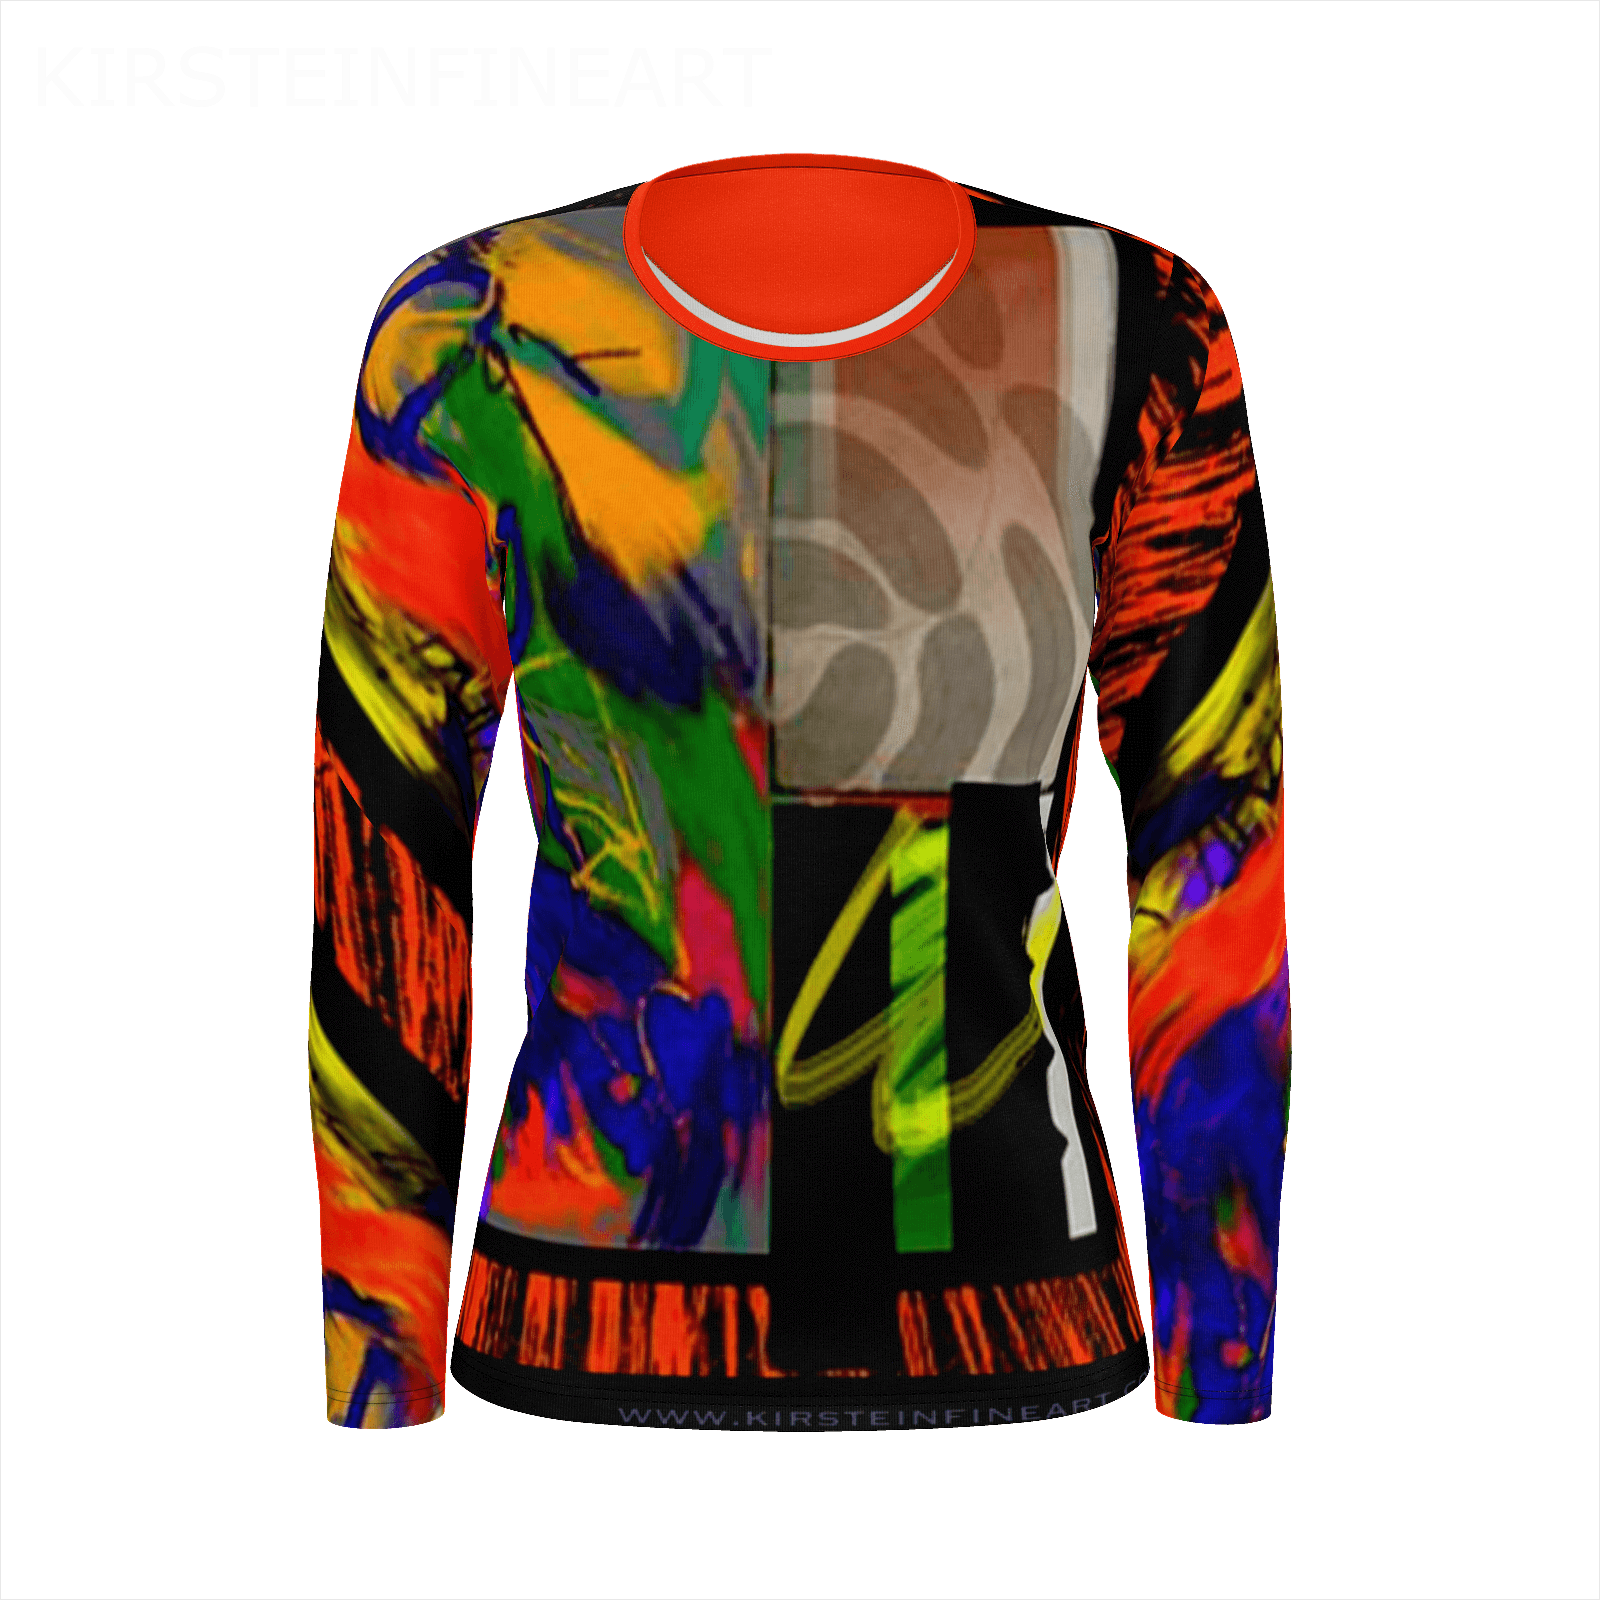 JUNGLE JAM Long Sleeve T-shirt - Kirsteinfineart